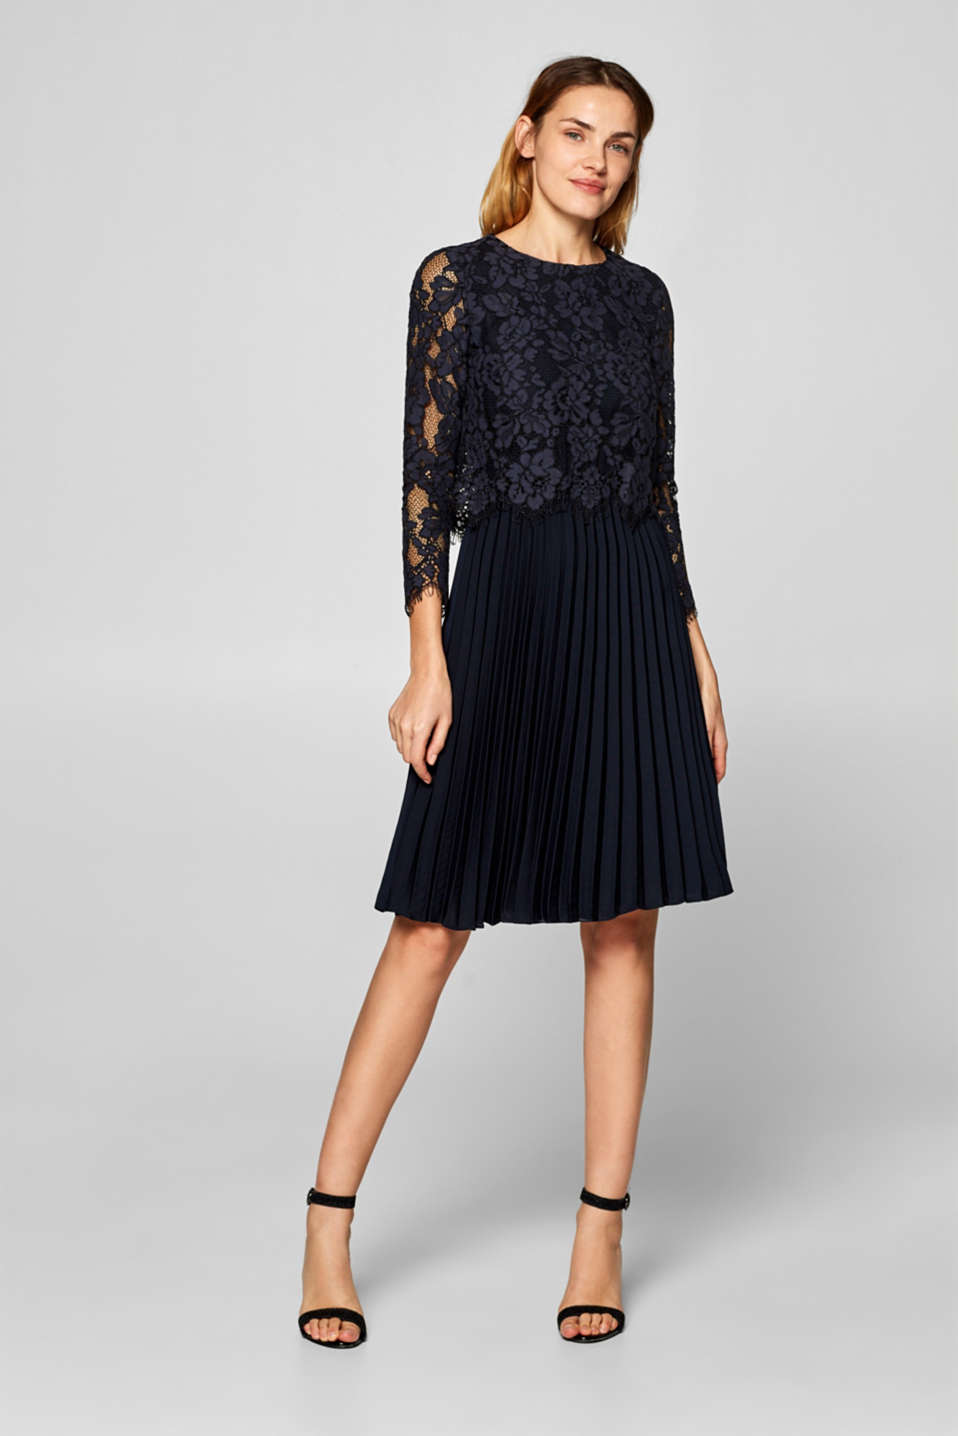 Esprit - Dress with a lace top and a pleated skirt